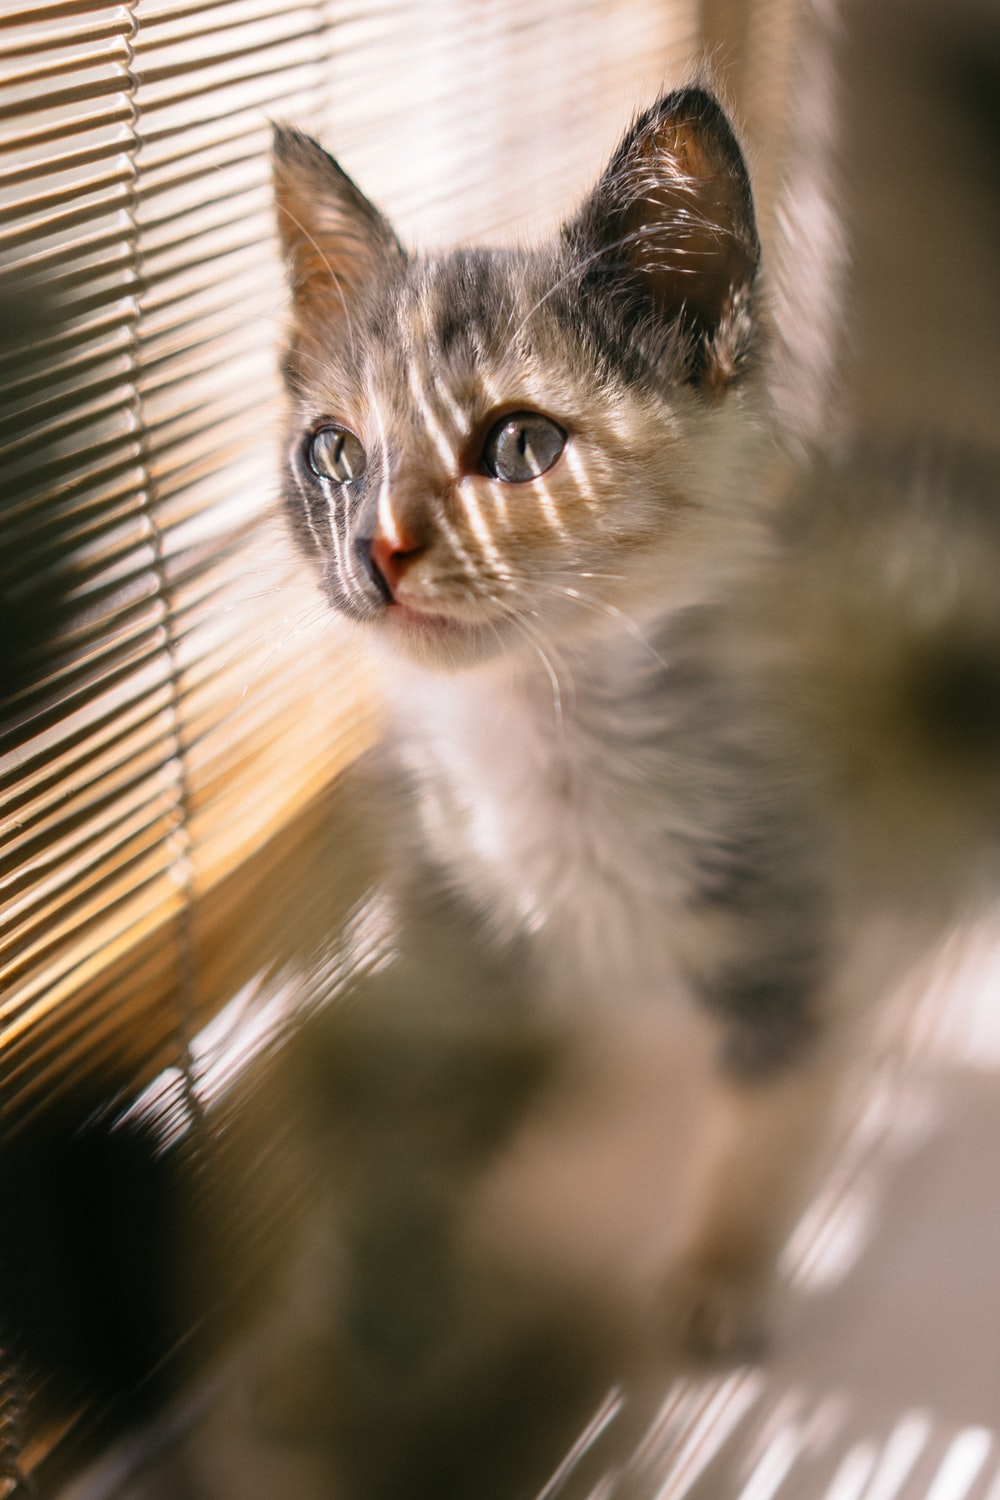 brown, black, and white calico kitten standing near brown window blind